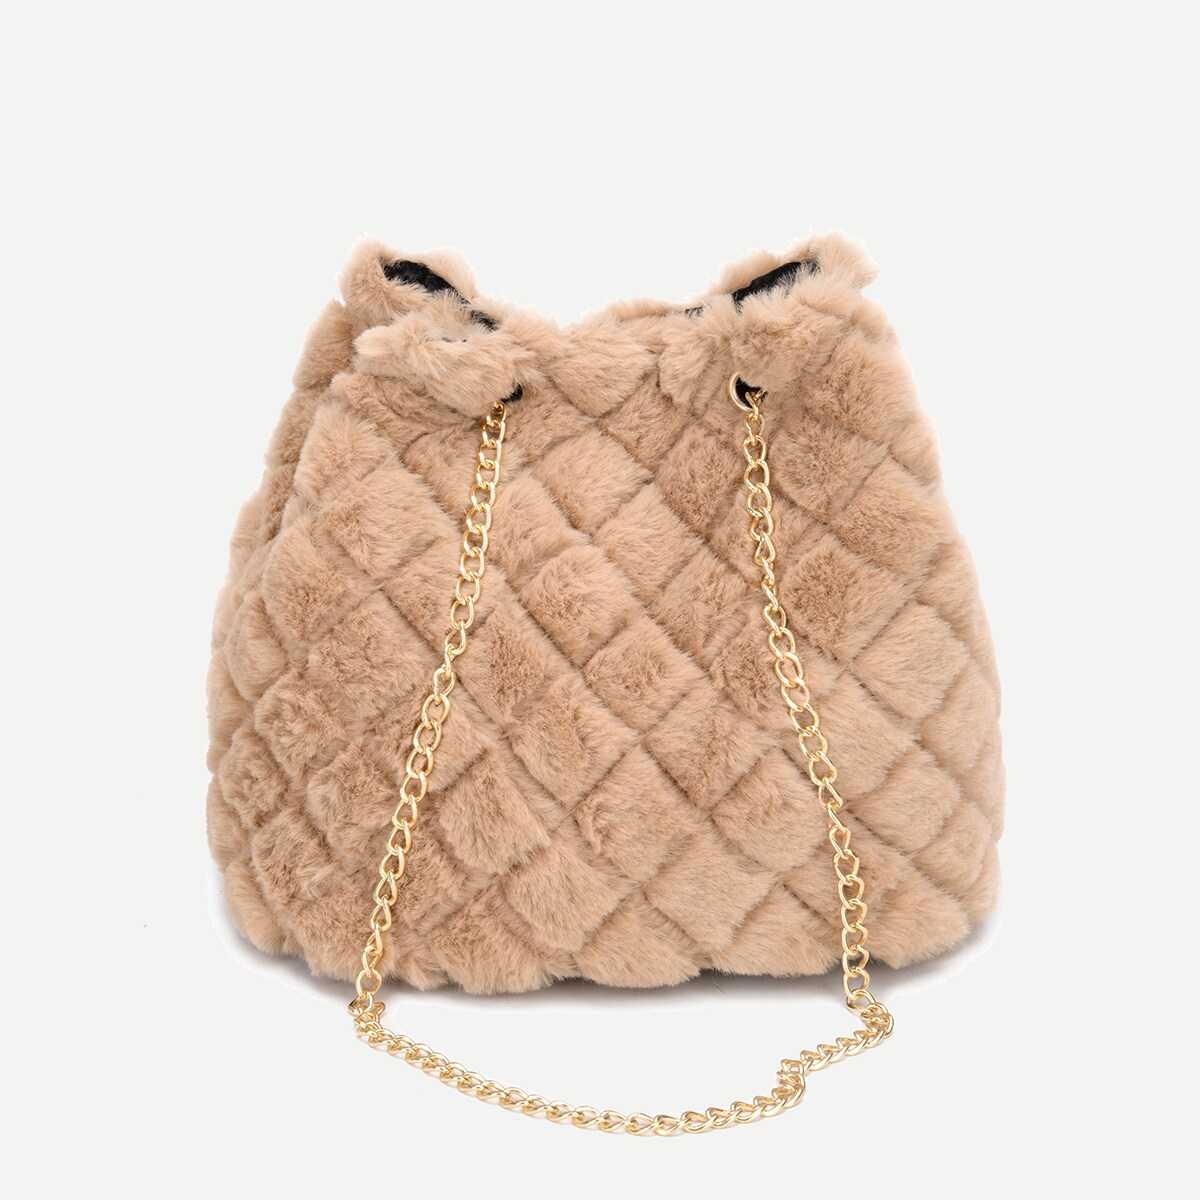 Quilted Detail Fuzzy Chain Tote Bag - Shein - GOOFASH